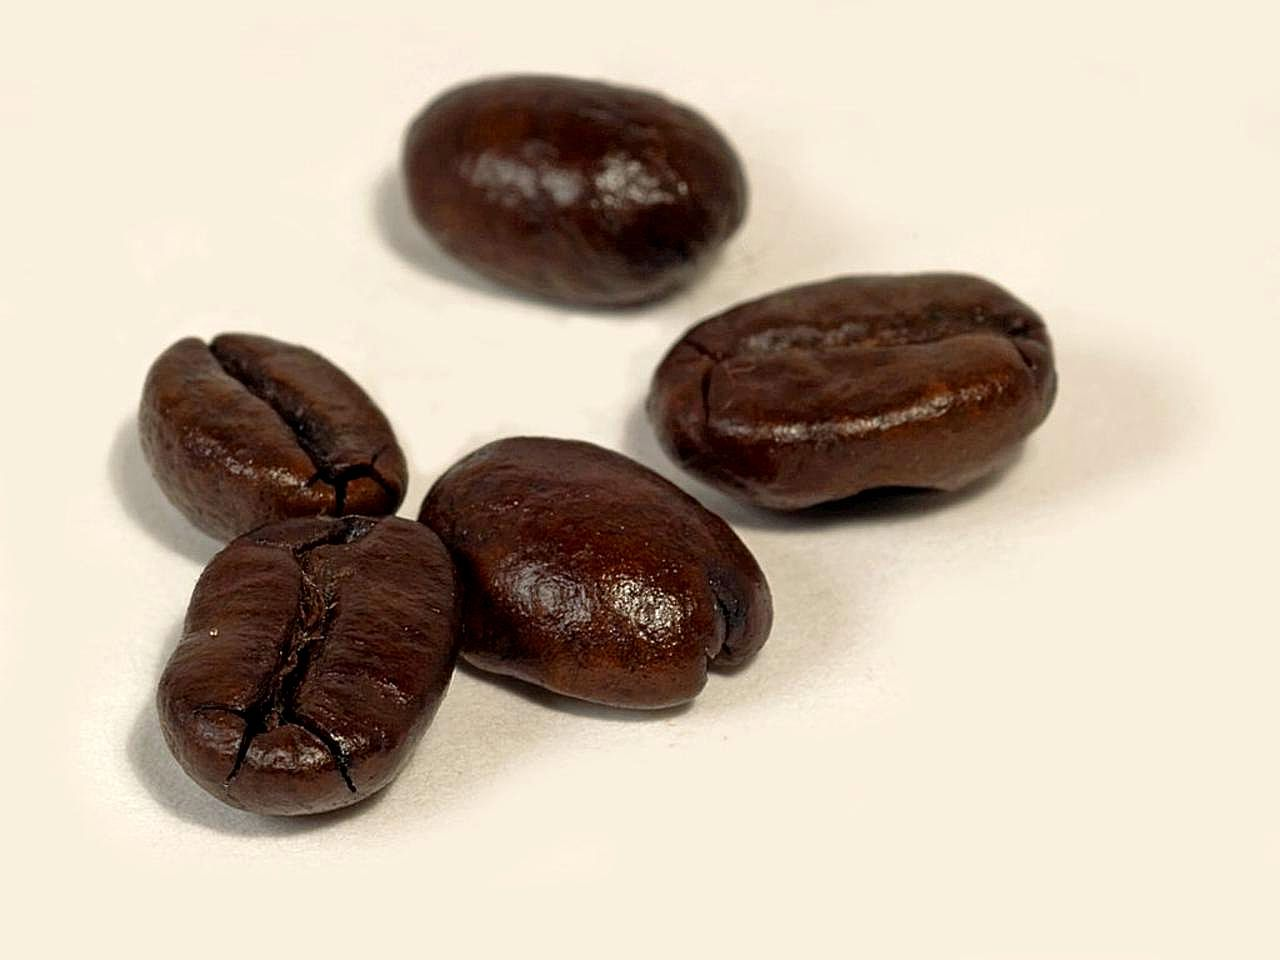 File:Dark roasted coffee on white background.jpg - Wikimedia Commons: commons.wikimedia.org/wiki/file:dark_roasted_coffee_on_white...